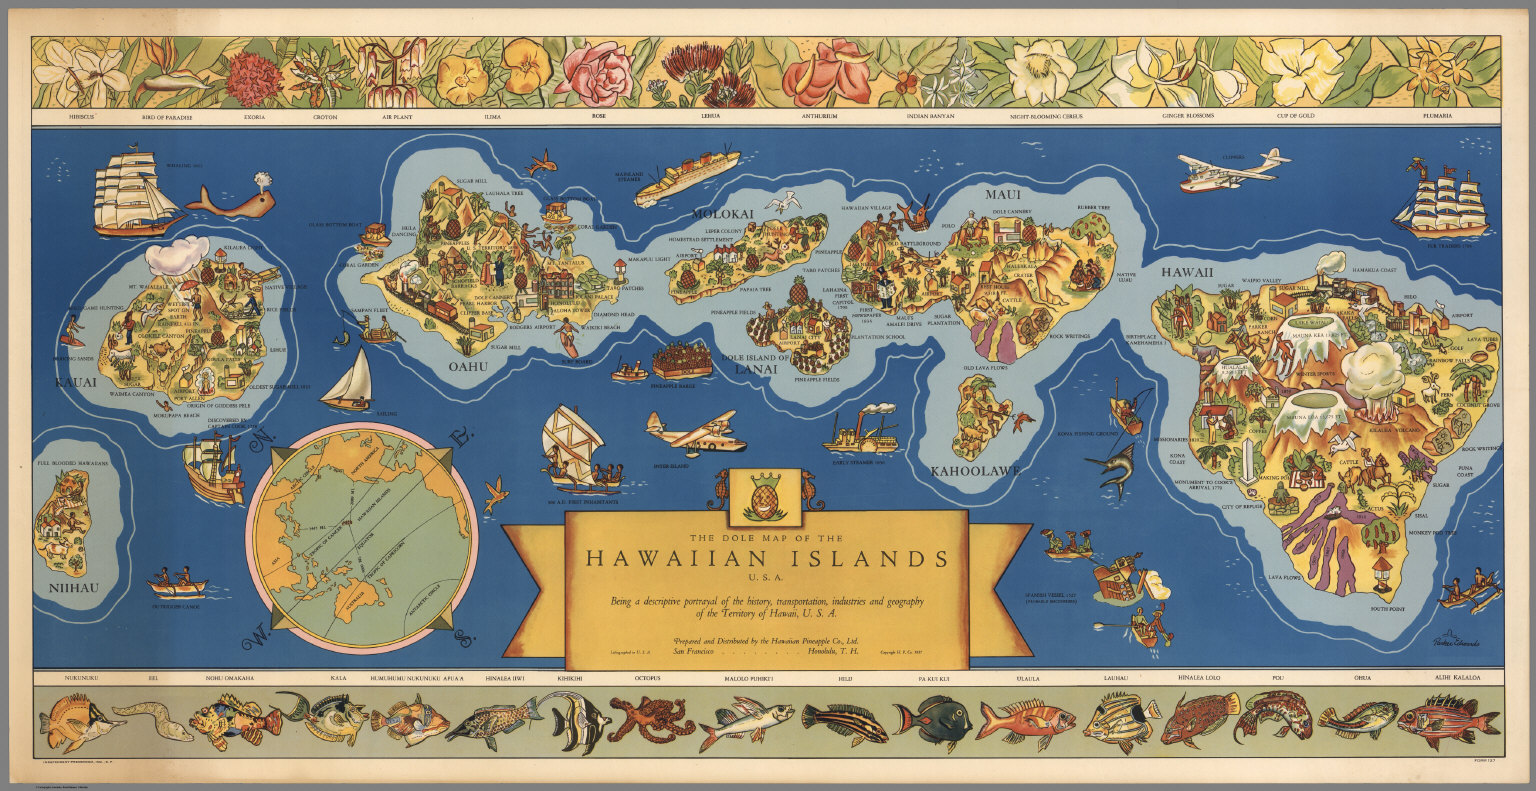 dole map of the hawaiian islands usa